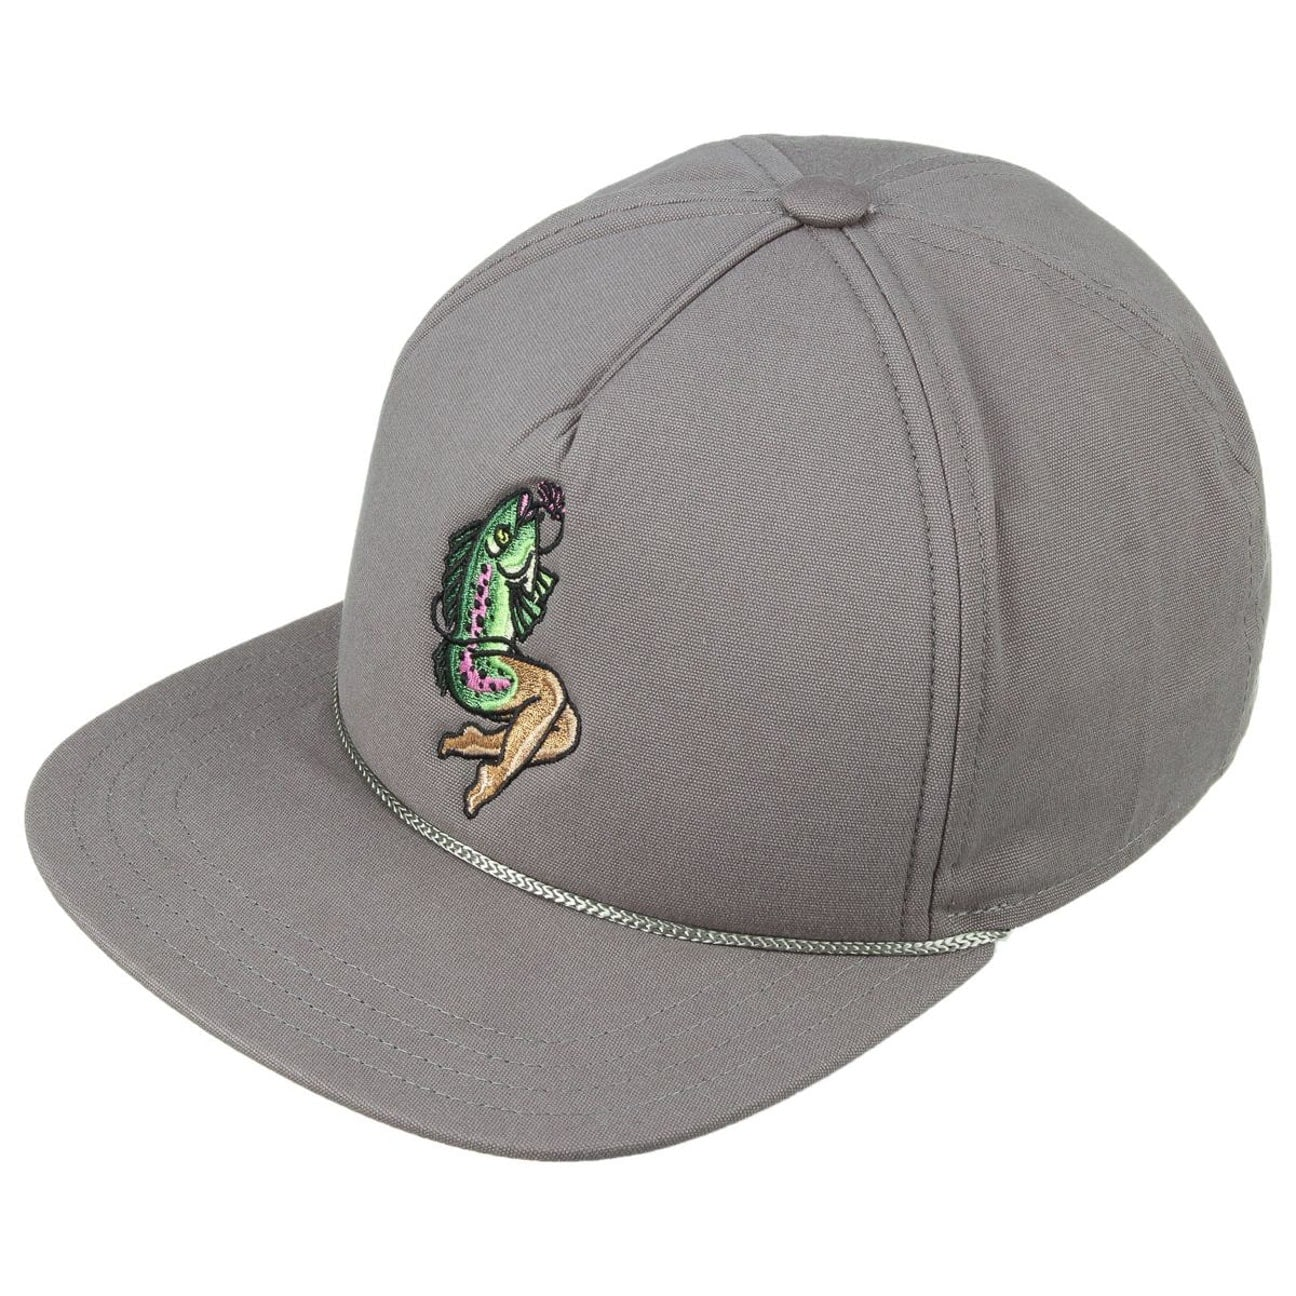 15fcf4ca6ef The Lore Fish Snapback Cap by Coal - grey 2 ...